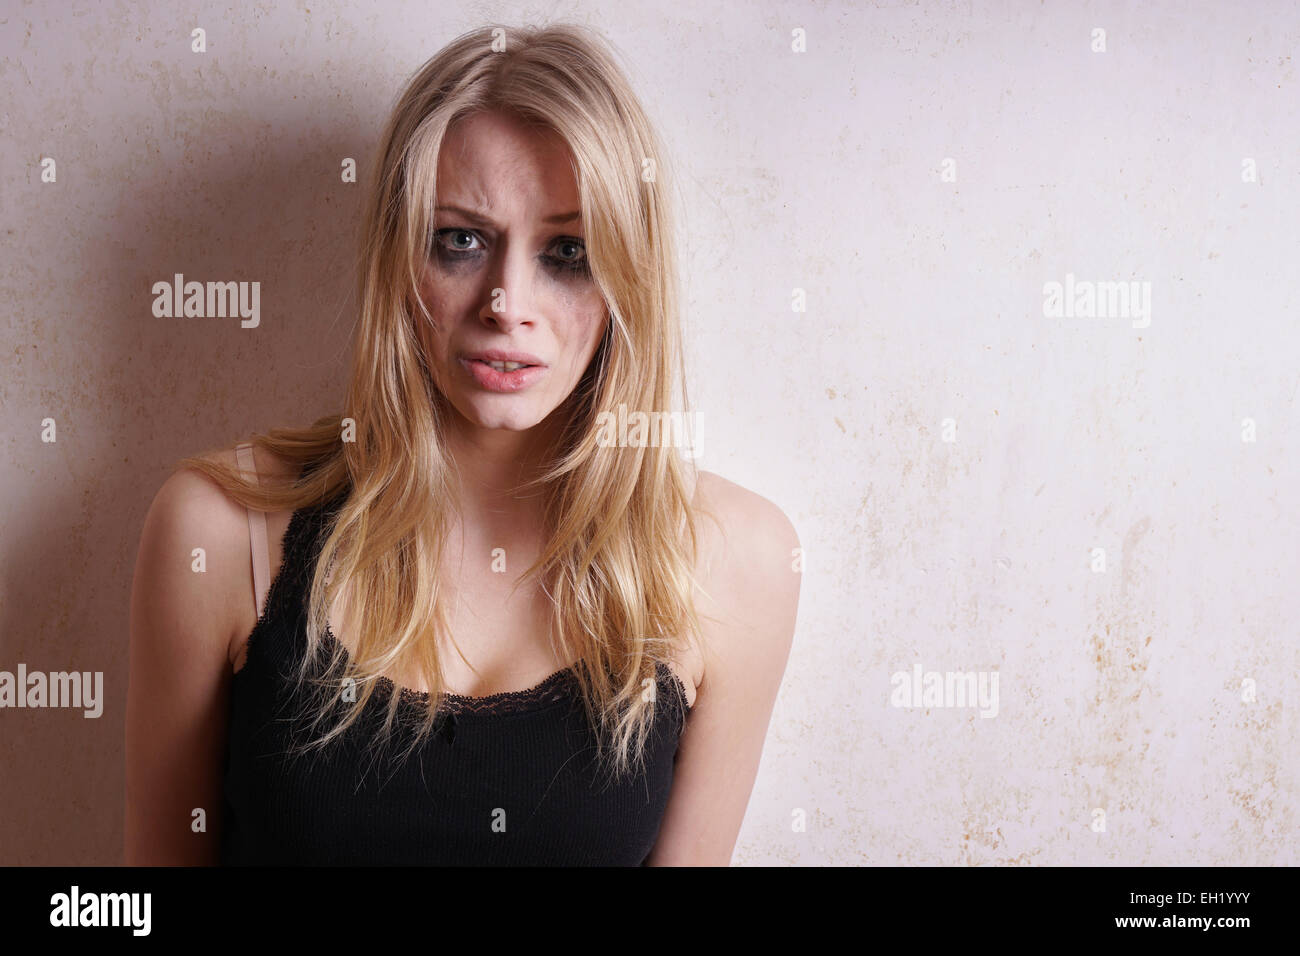 woman with smeared mascara - Stock Image